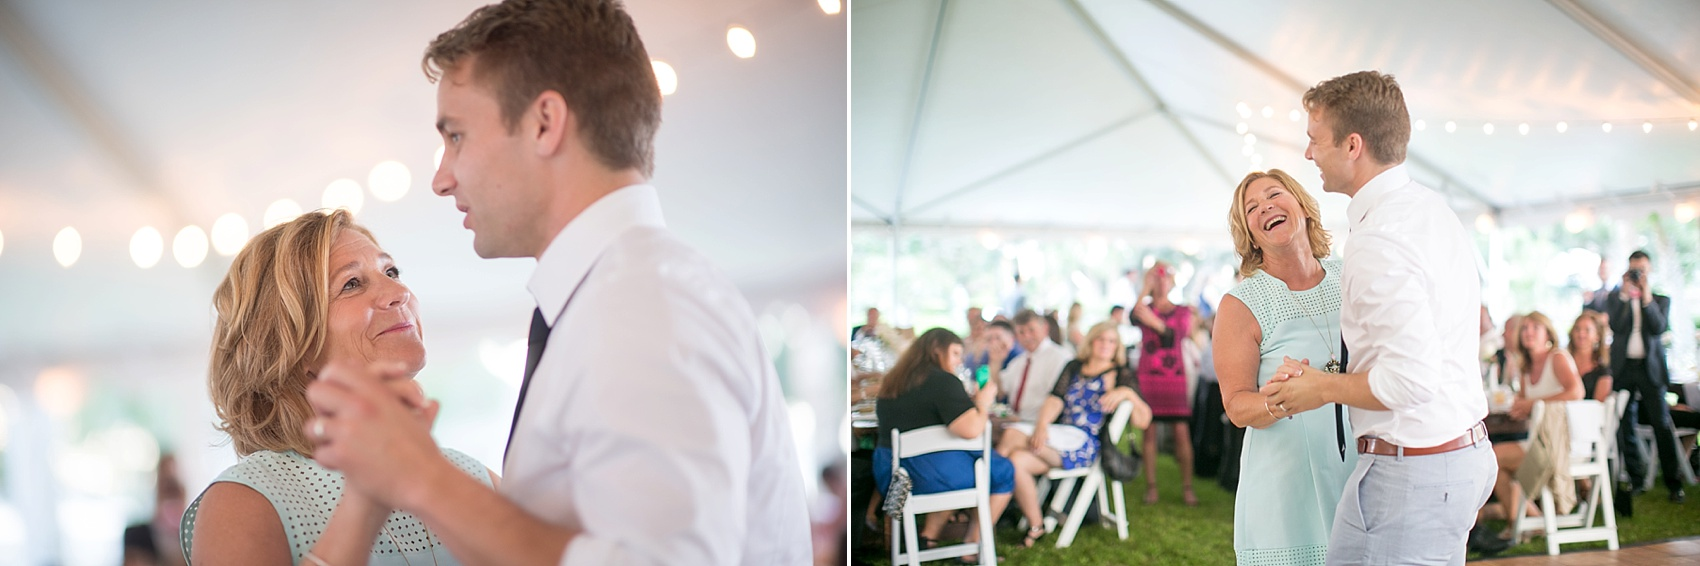 Mother-son dance at a wedding at Haig Point in South Carolina, off the coast of Hilton Head. Photos by Mikkel Paige Photography.